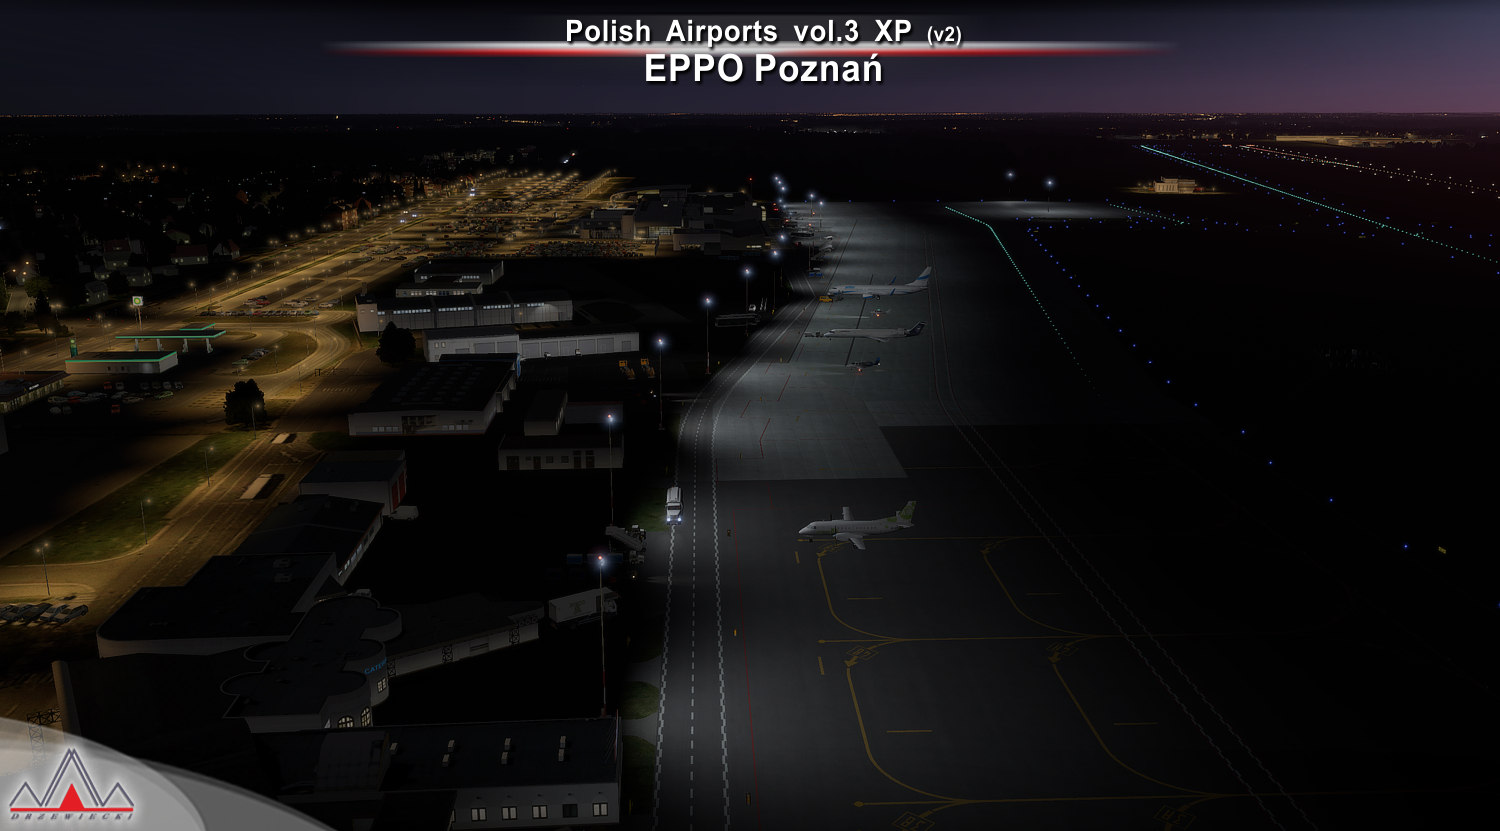 DRZEWIECKI DESIGN - POLISH AIRPORTS VOL3 XP (V2) X-PLANE 11